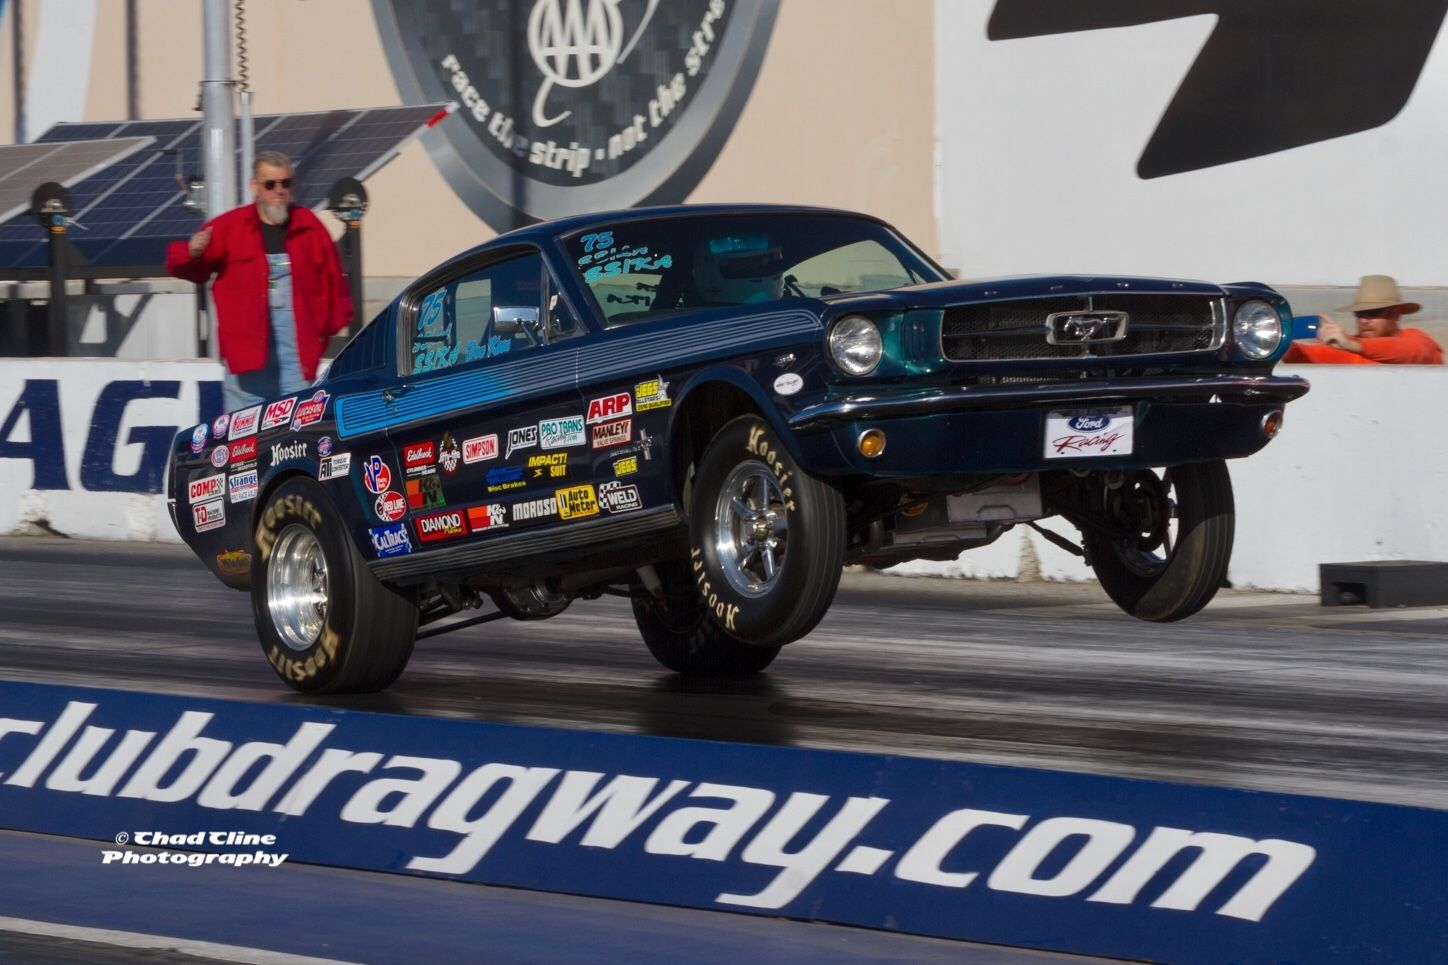 Chad Cline Photography Drag Racing Cars 64 Mustang Old Race Cars